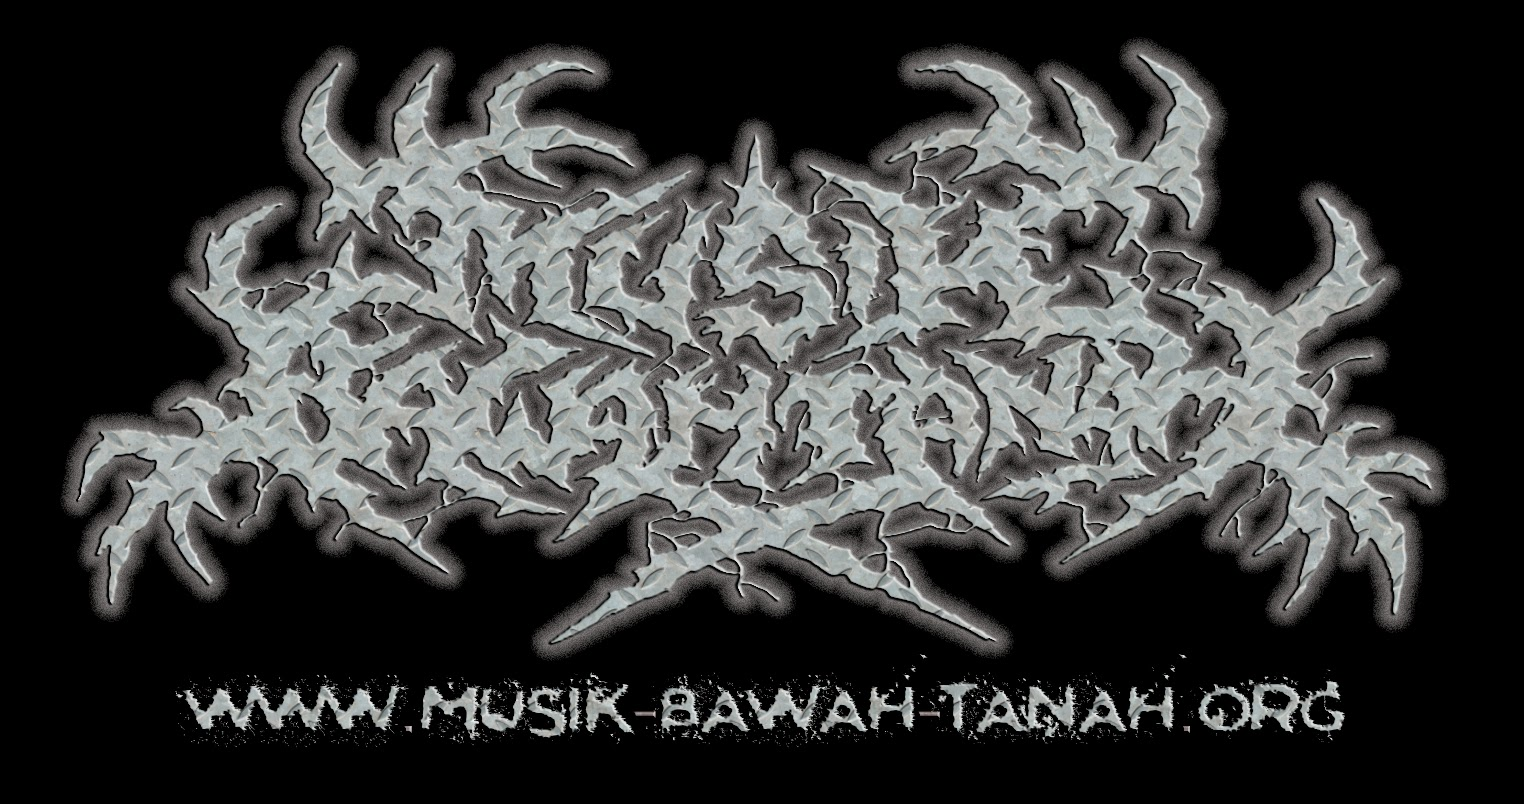 Musik Bawah Tanah | Black Metal | Grindcore | Screamo | Death Metal | Punk Rock | Hardcore | Metalcore | Gothic Metal | Deathcore | Artwork 2